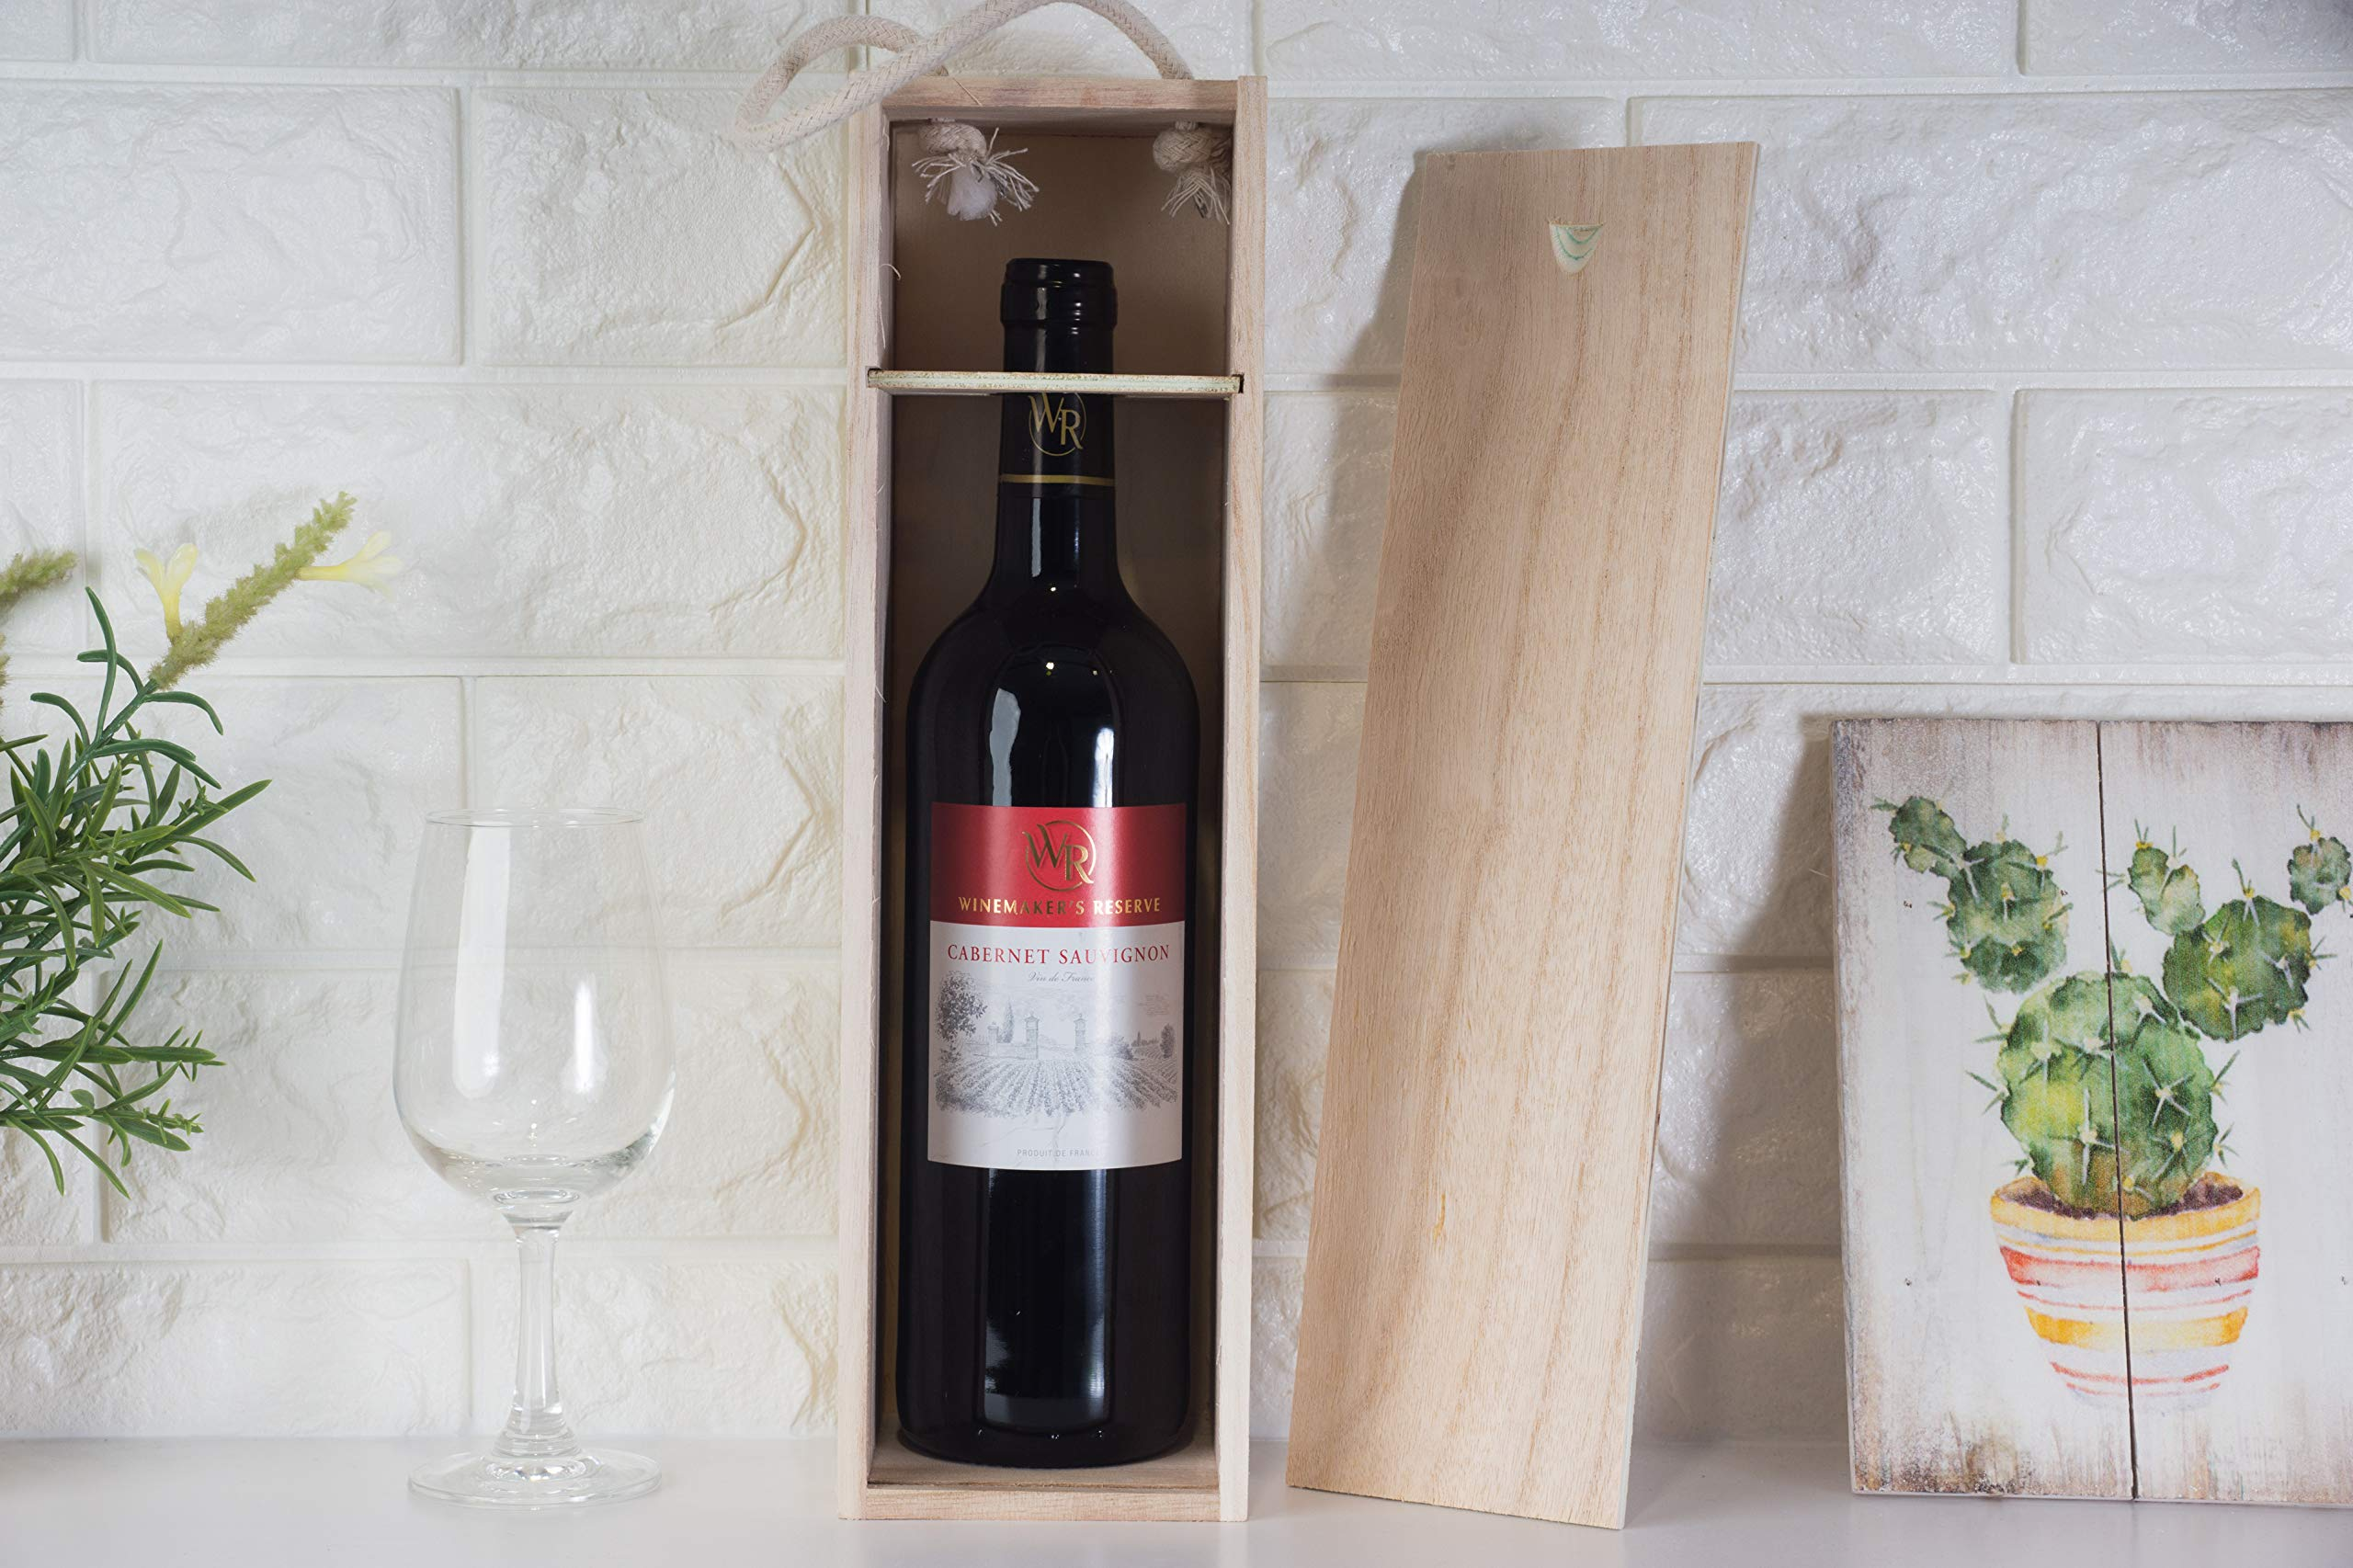 Juvale Wooden Wine Box - 2-Pack Single Wine Bottle Wood Storage Gift Box with Handle for Birthday Party, Housewarming, Wedding, Anniversary, 13.875 x 3.875 x 4 Inches by Juvale (Image #3)